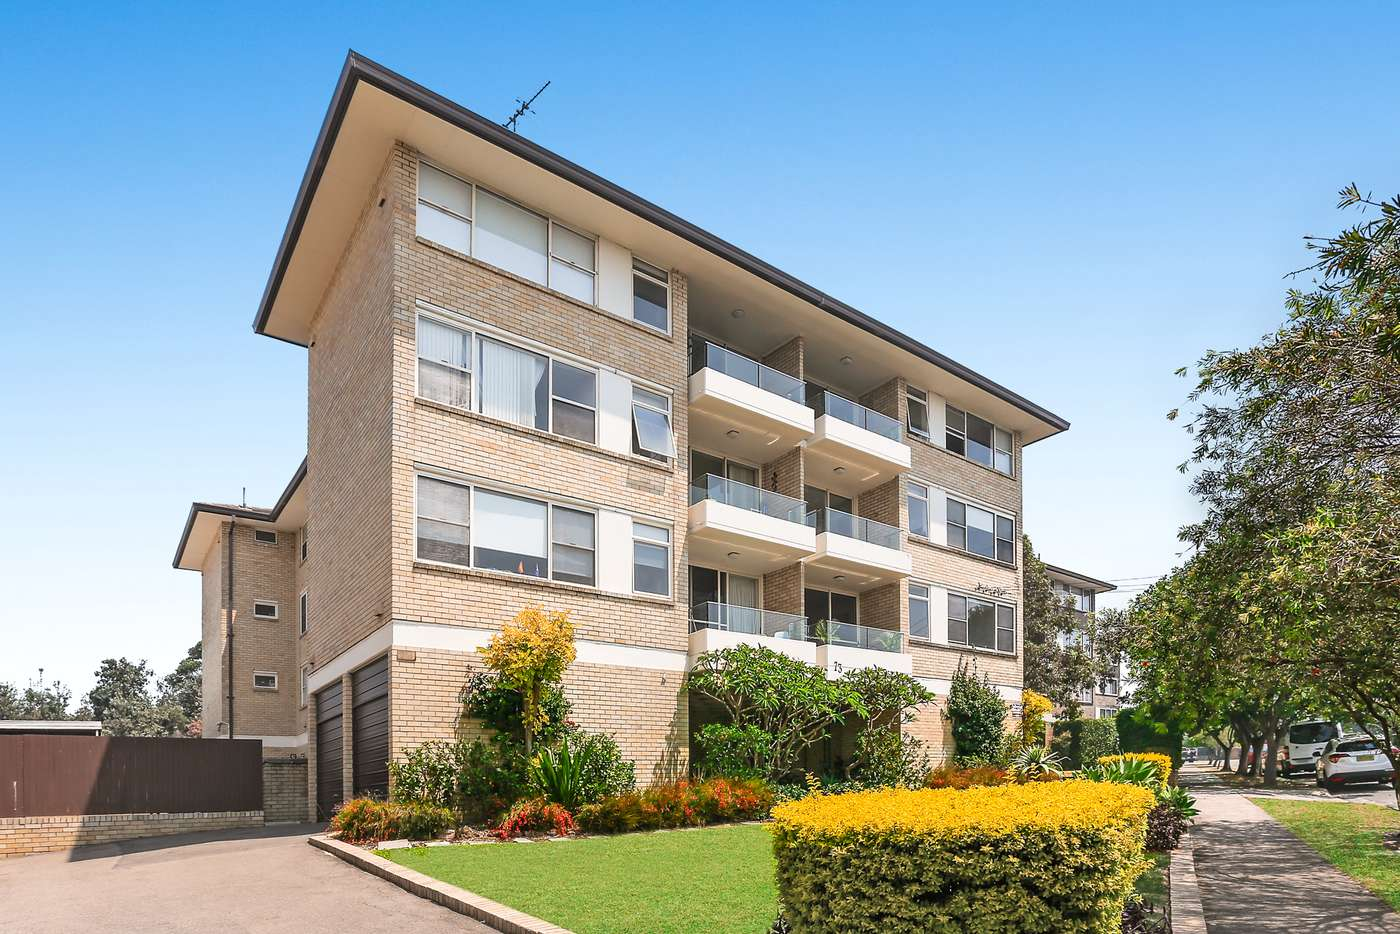 Main view of Homely apartment listing, 34/73 Broome Street, Maroubra NSW 2035